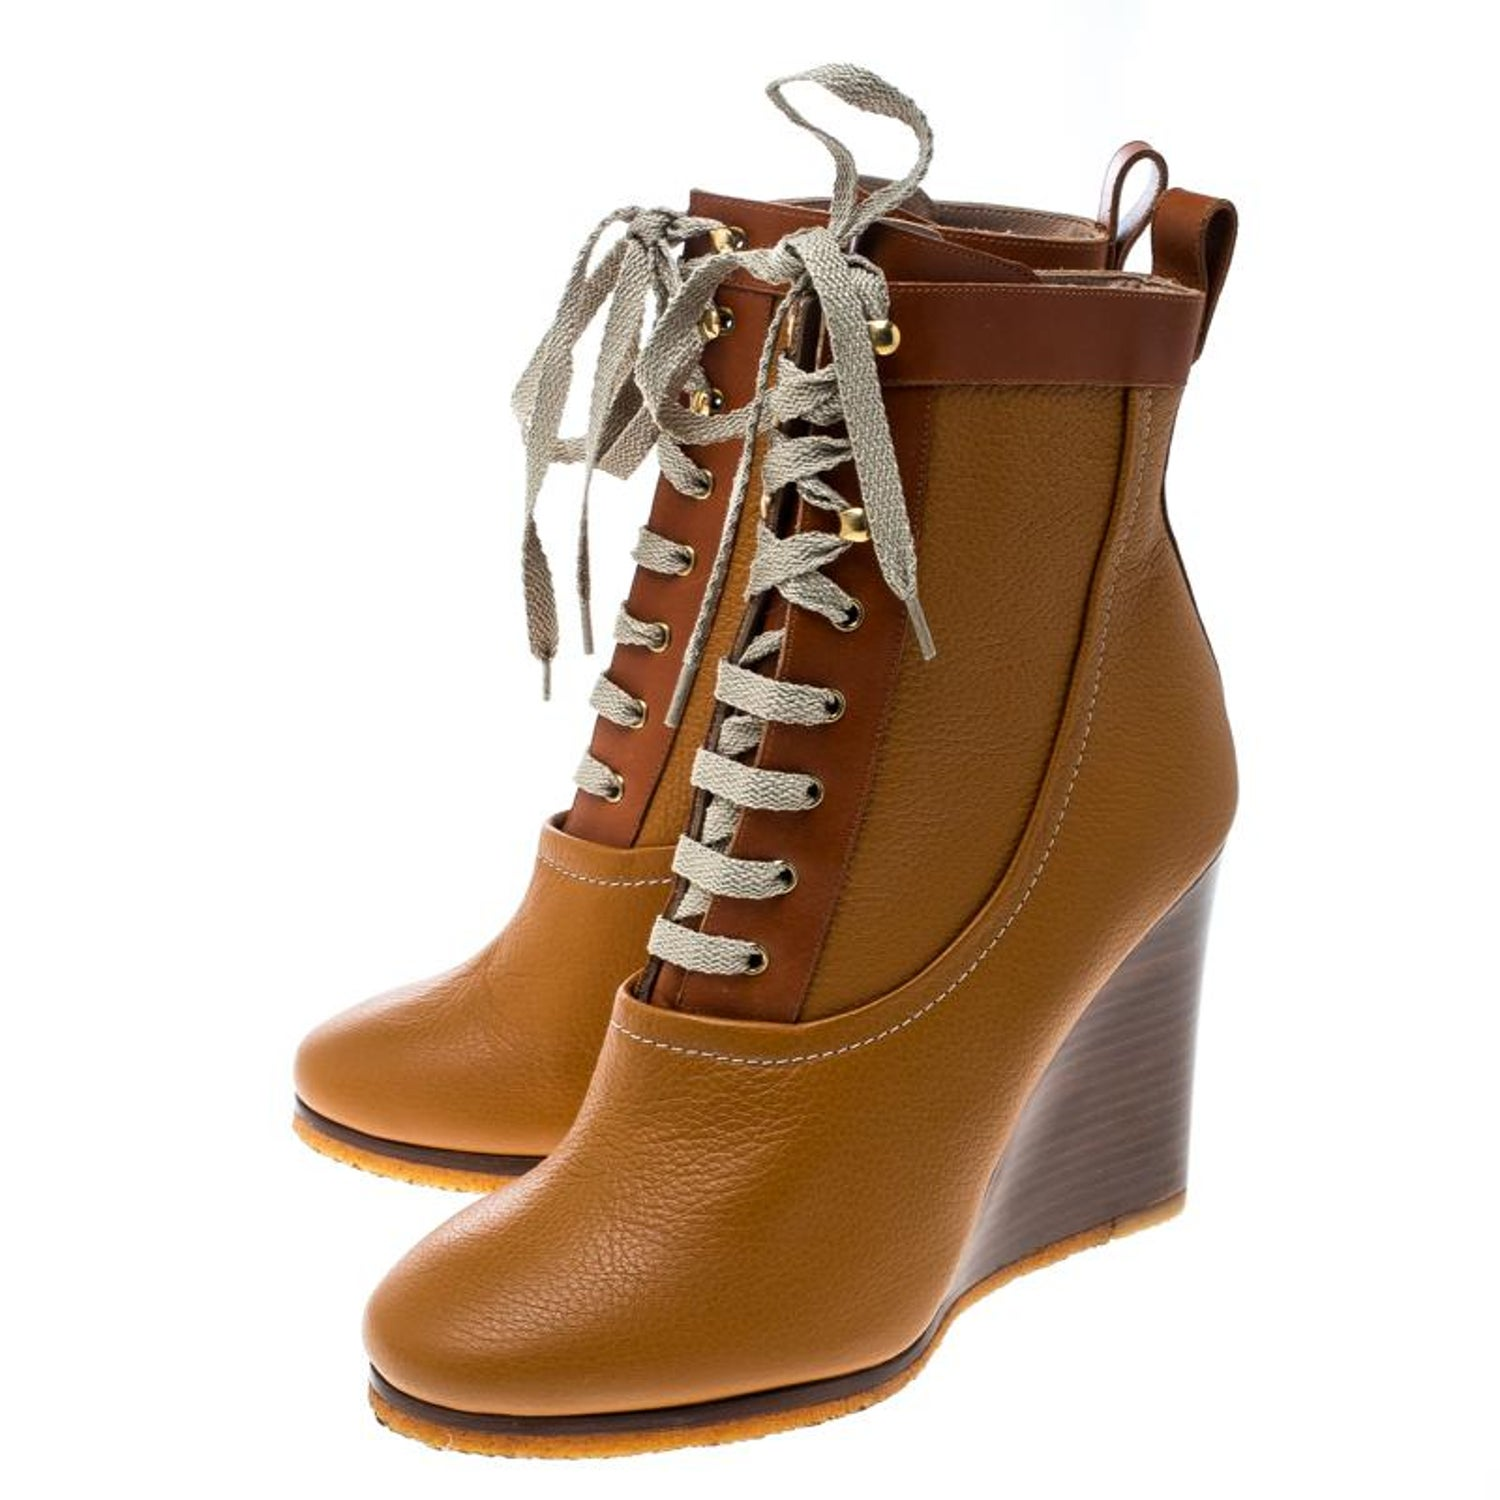 3d18041fce688 Chloe Brown Leather Lace Up Wedge Ankle Boots Size 38 For Sale at 1stdibs